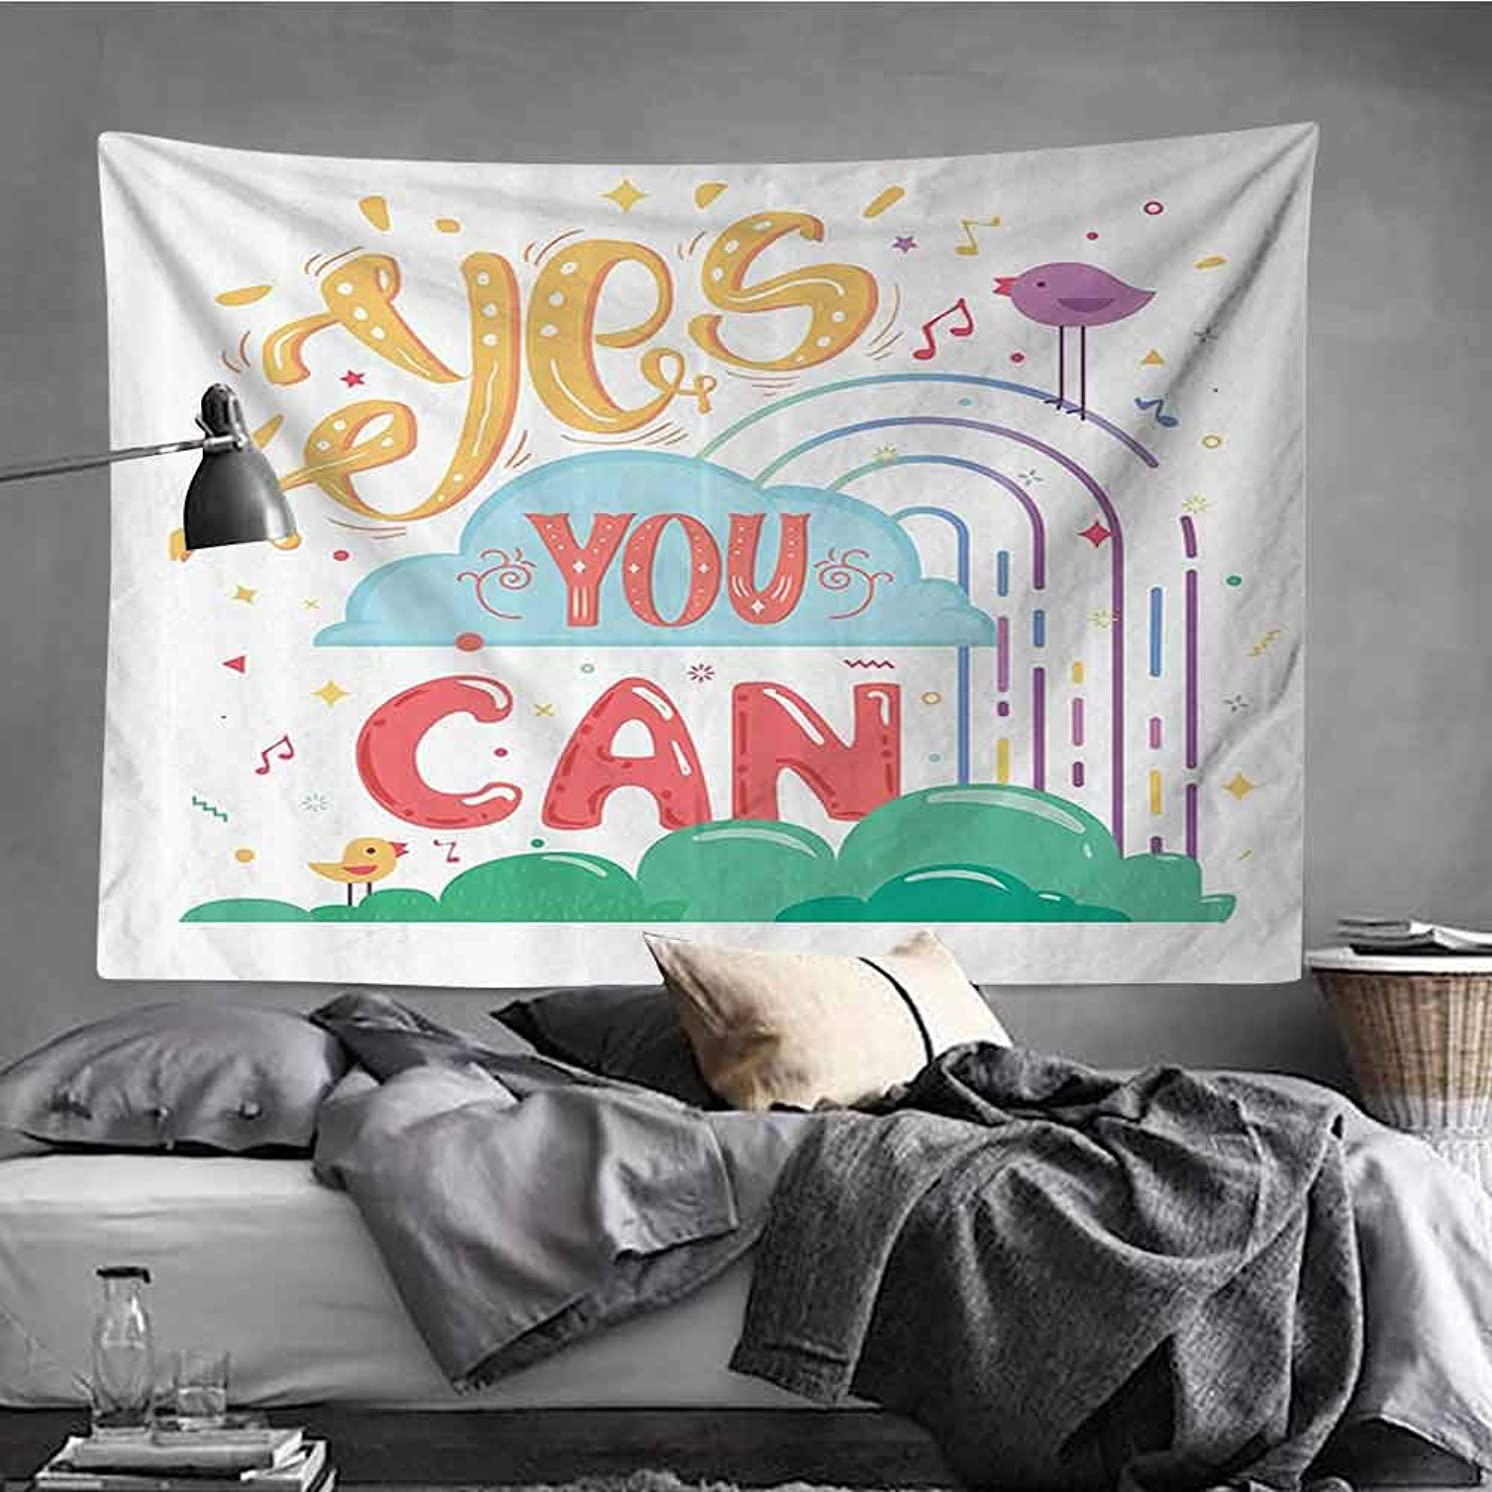 AndyTours Wall Tapestry for Bedroom,Quotes Decor Collection,Tapestry for Home Decor,70